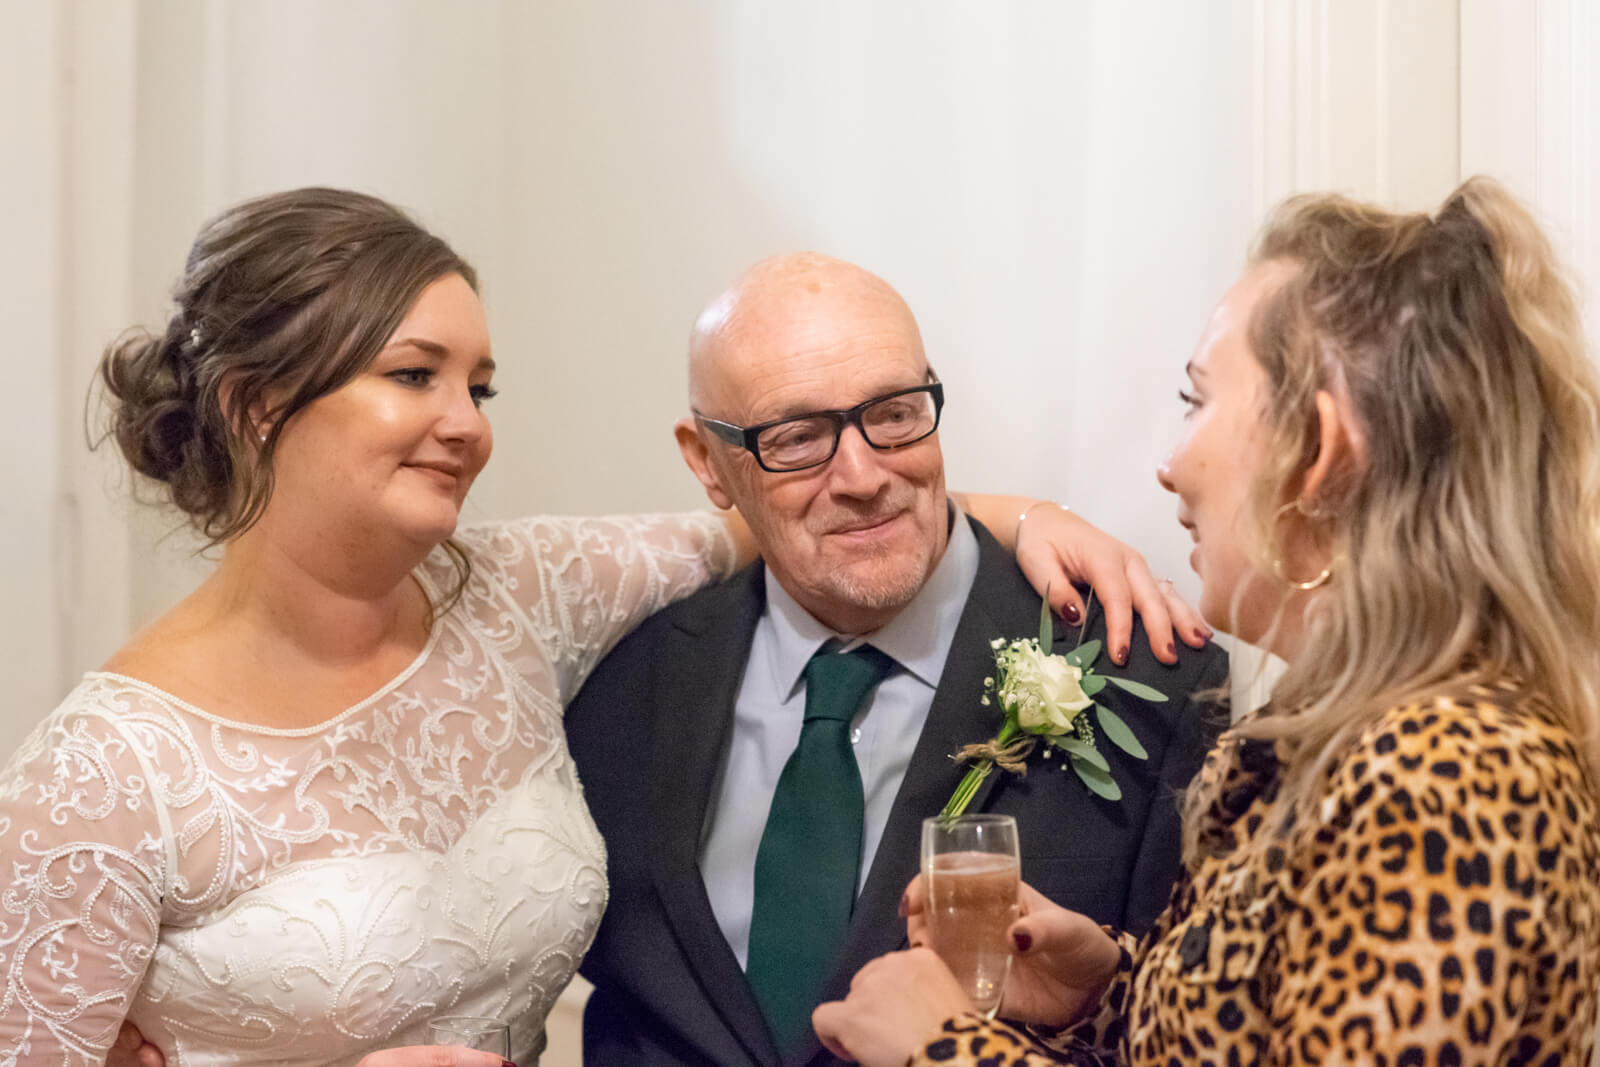 Bride with her arm around her father's shoulders talks to a friend